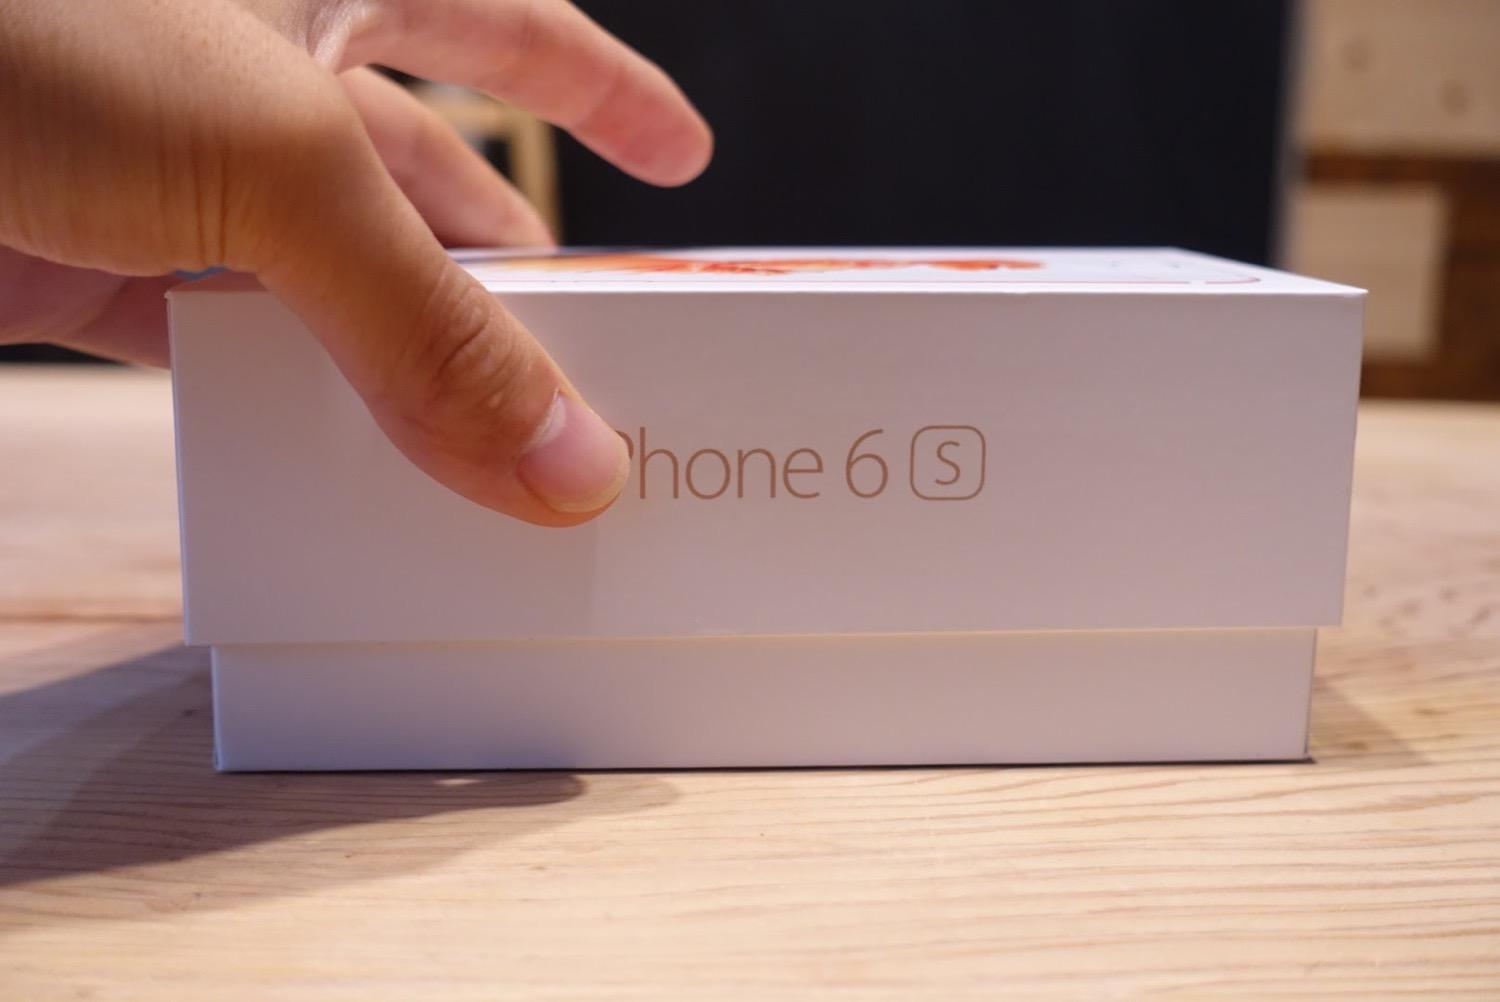 Iphone6s review6